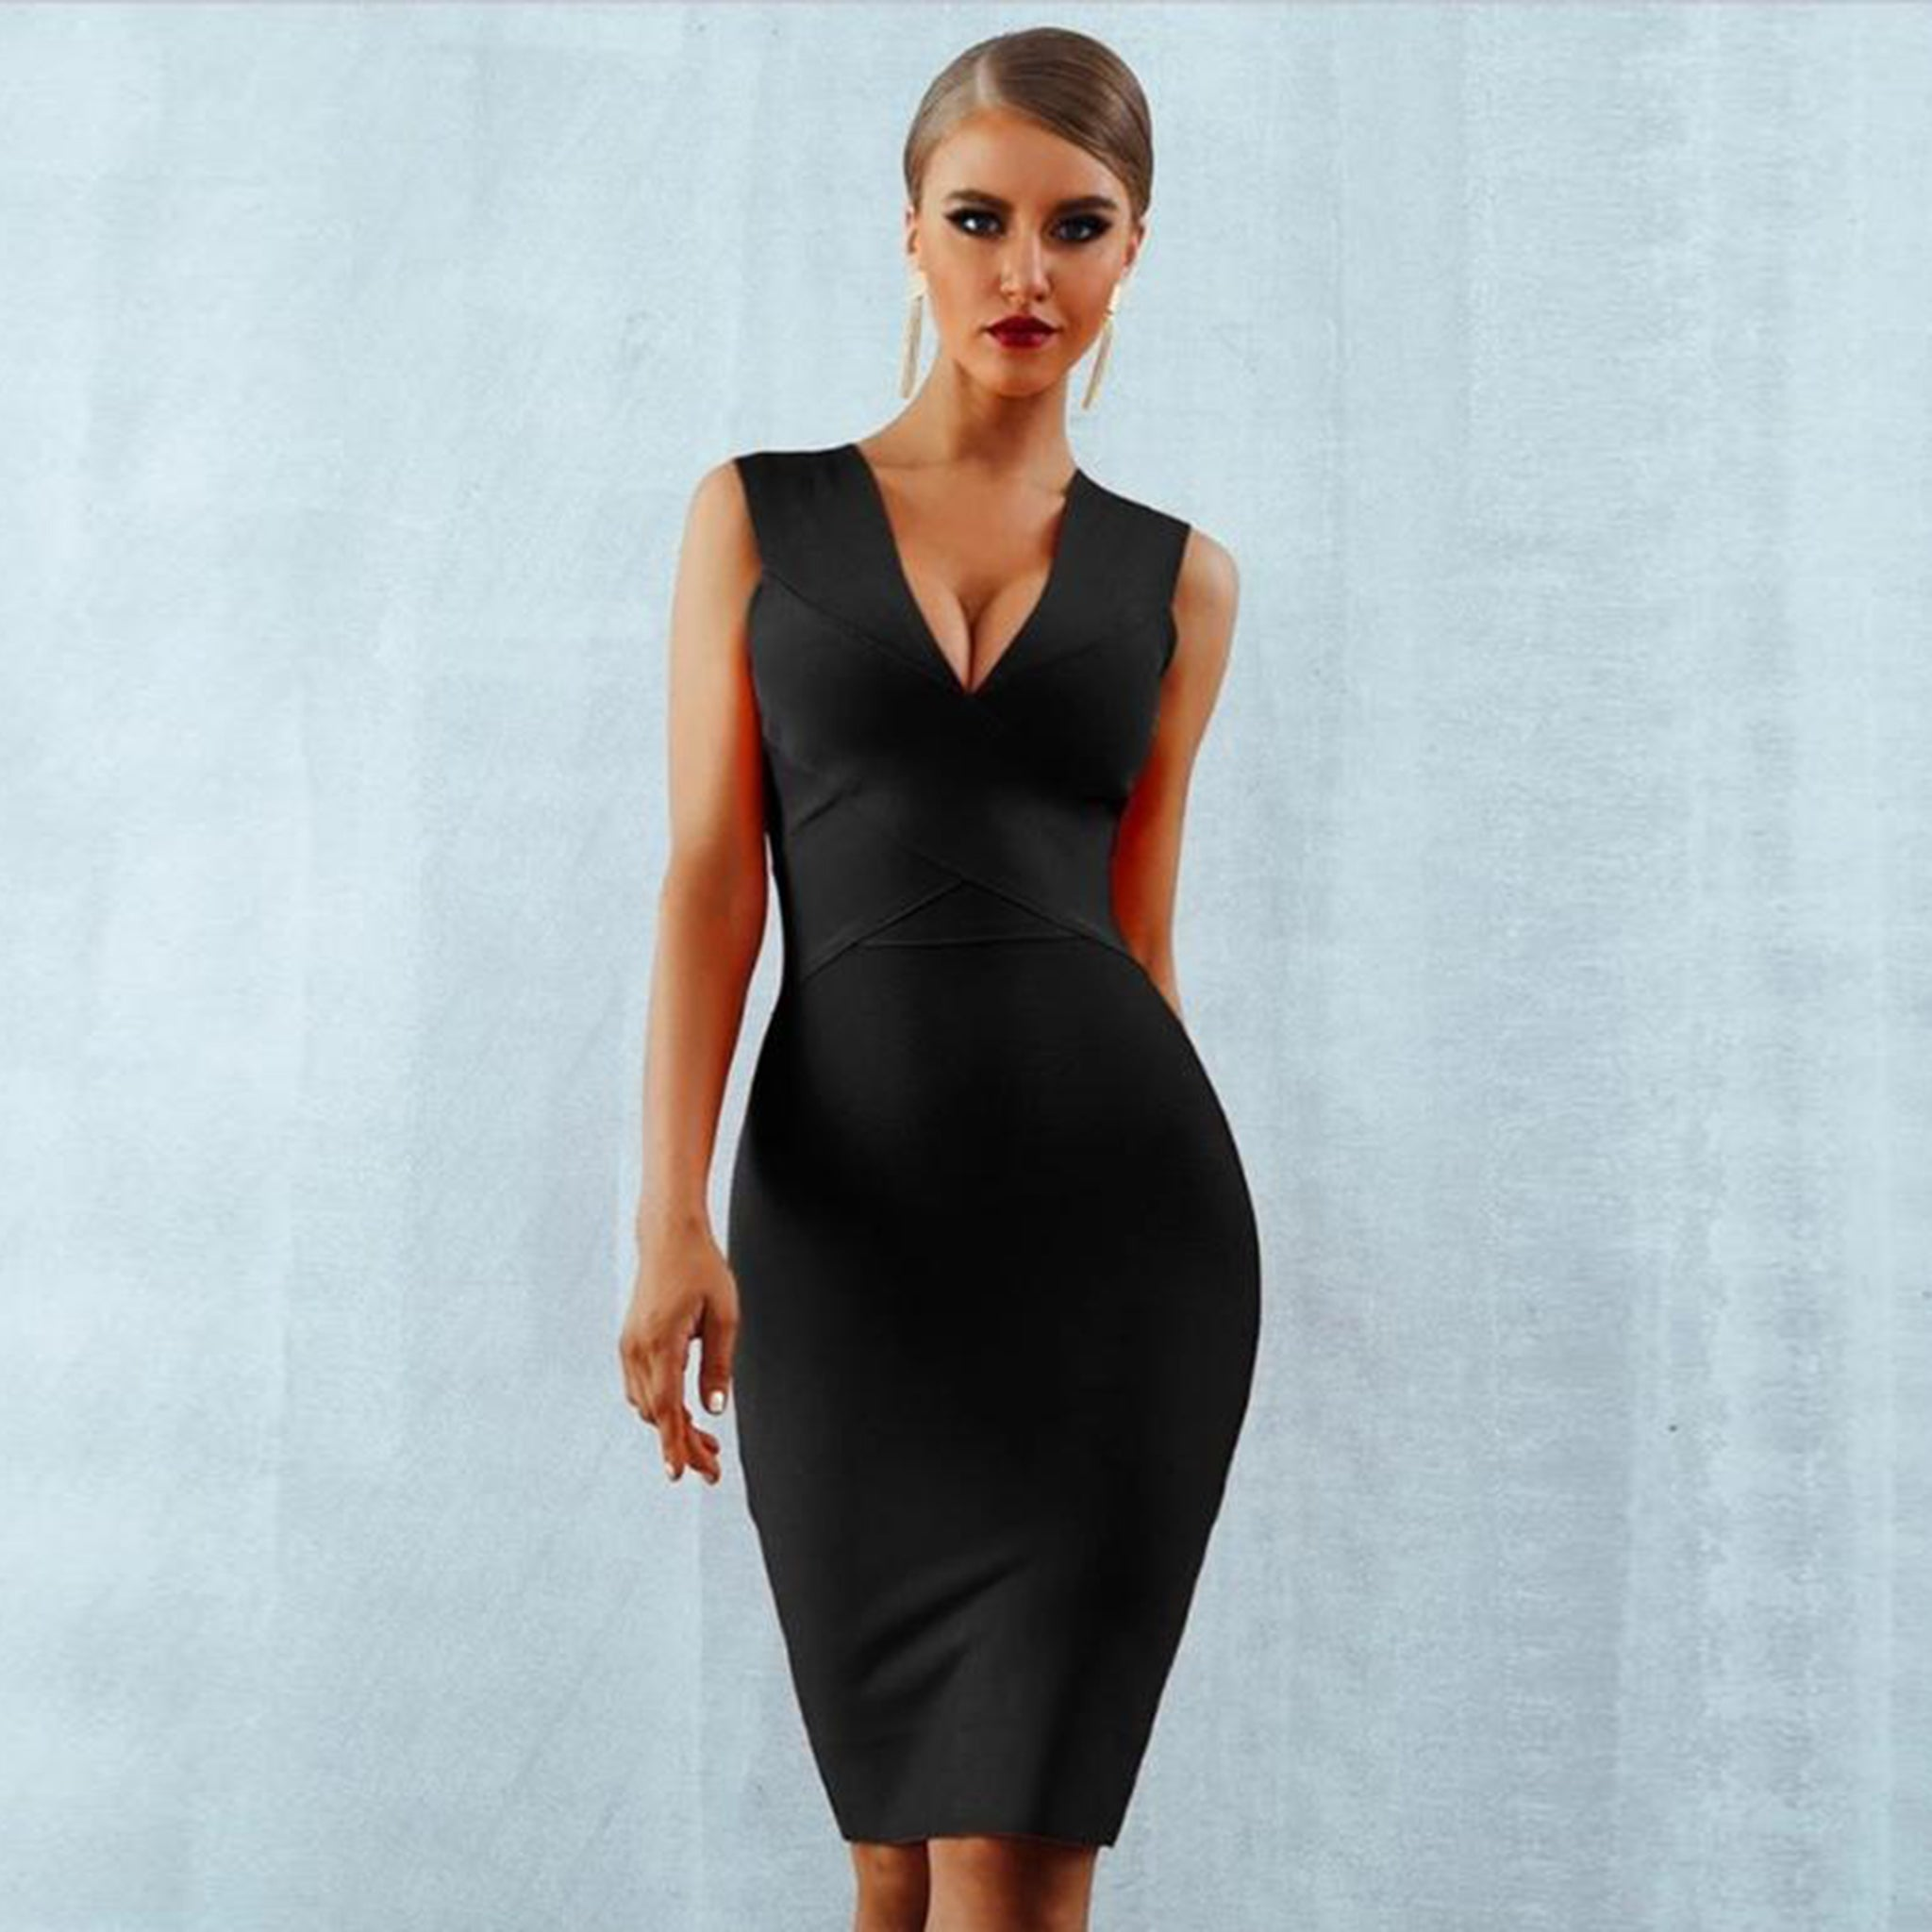 Black Bandage Cross Front Dress - Top Glam Shop